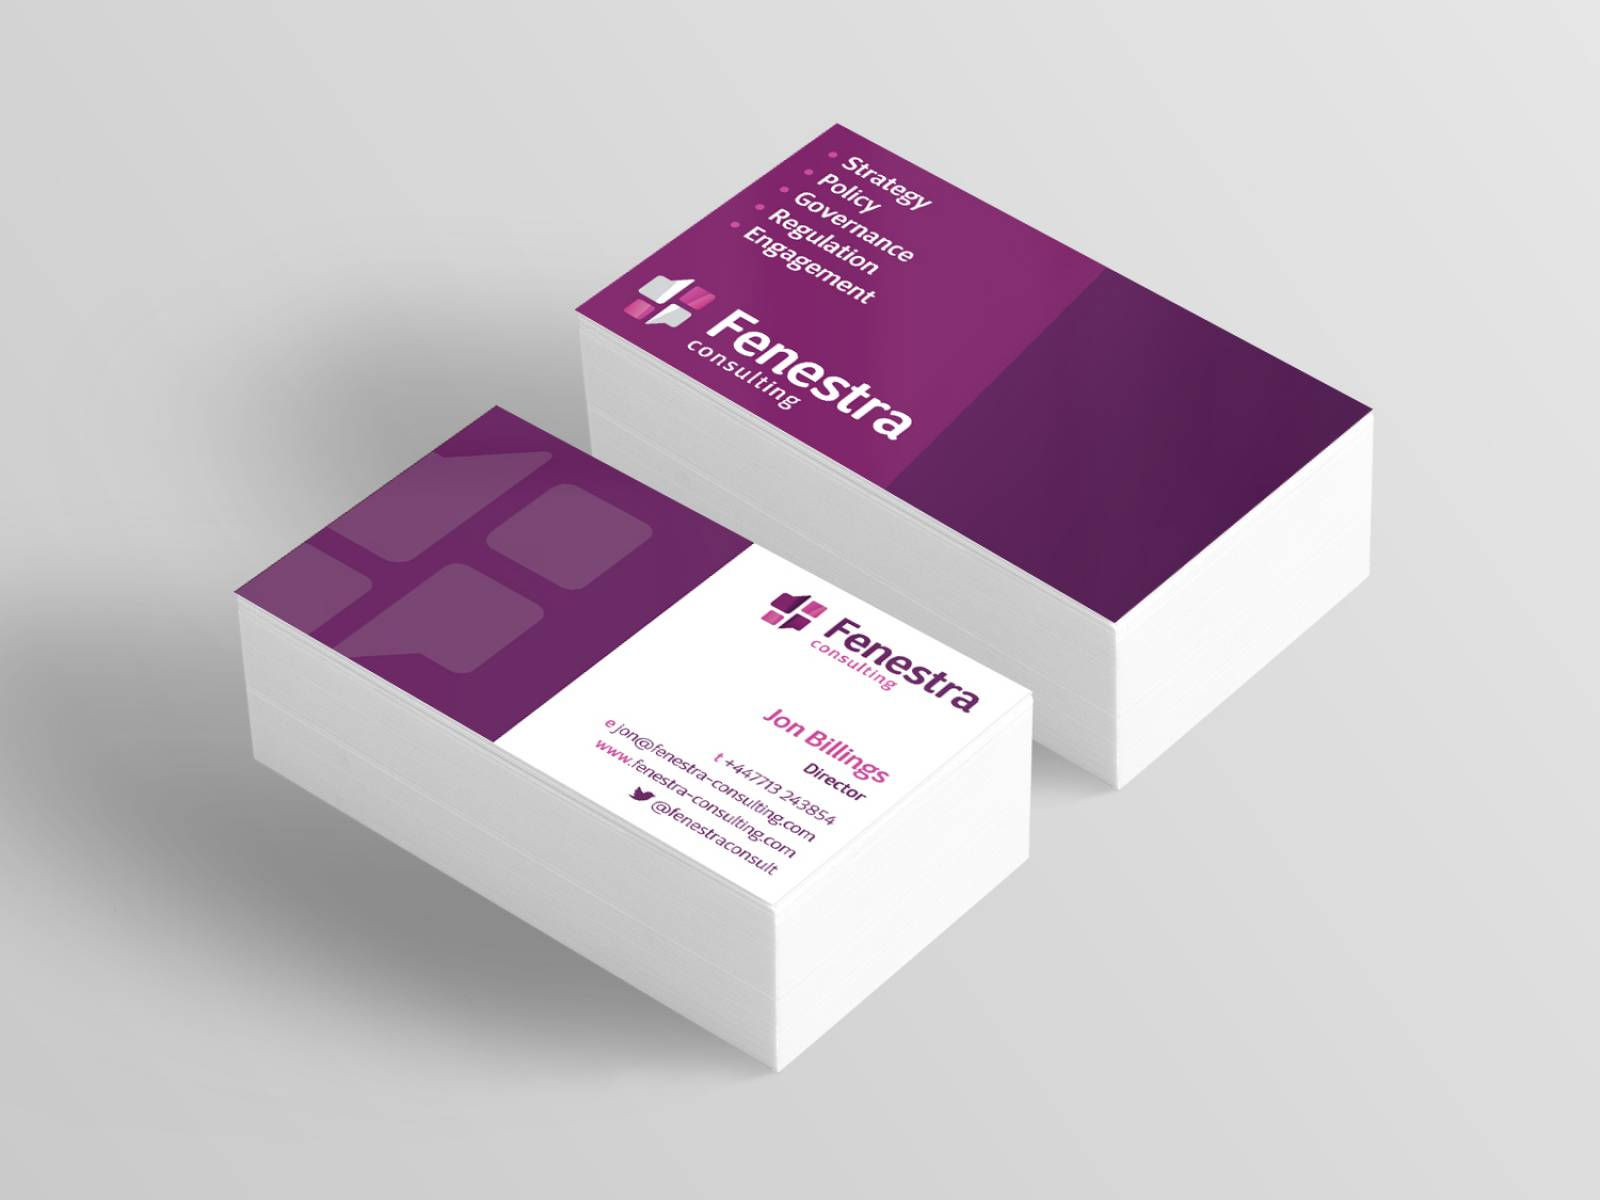 Business-Fenestra-business-card-design-agency-graphic-design-canterbury.jpg